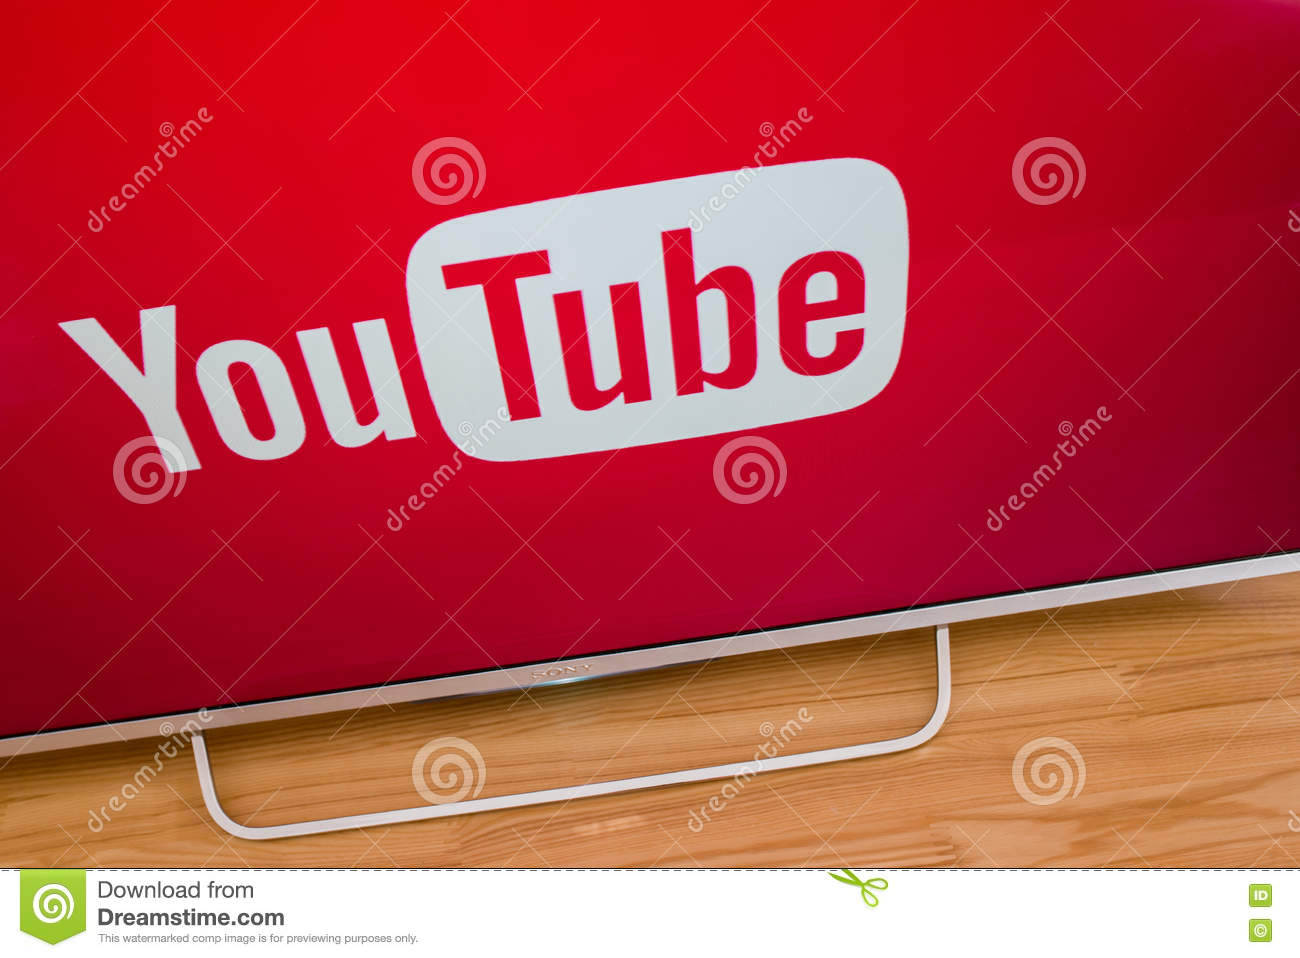 YouTube App On Sony Smart TV Editorial Stock Image - Image of social